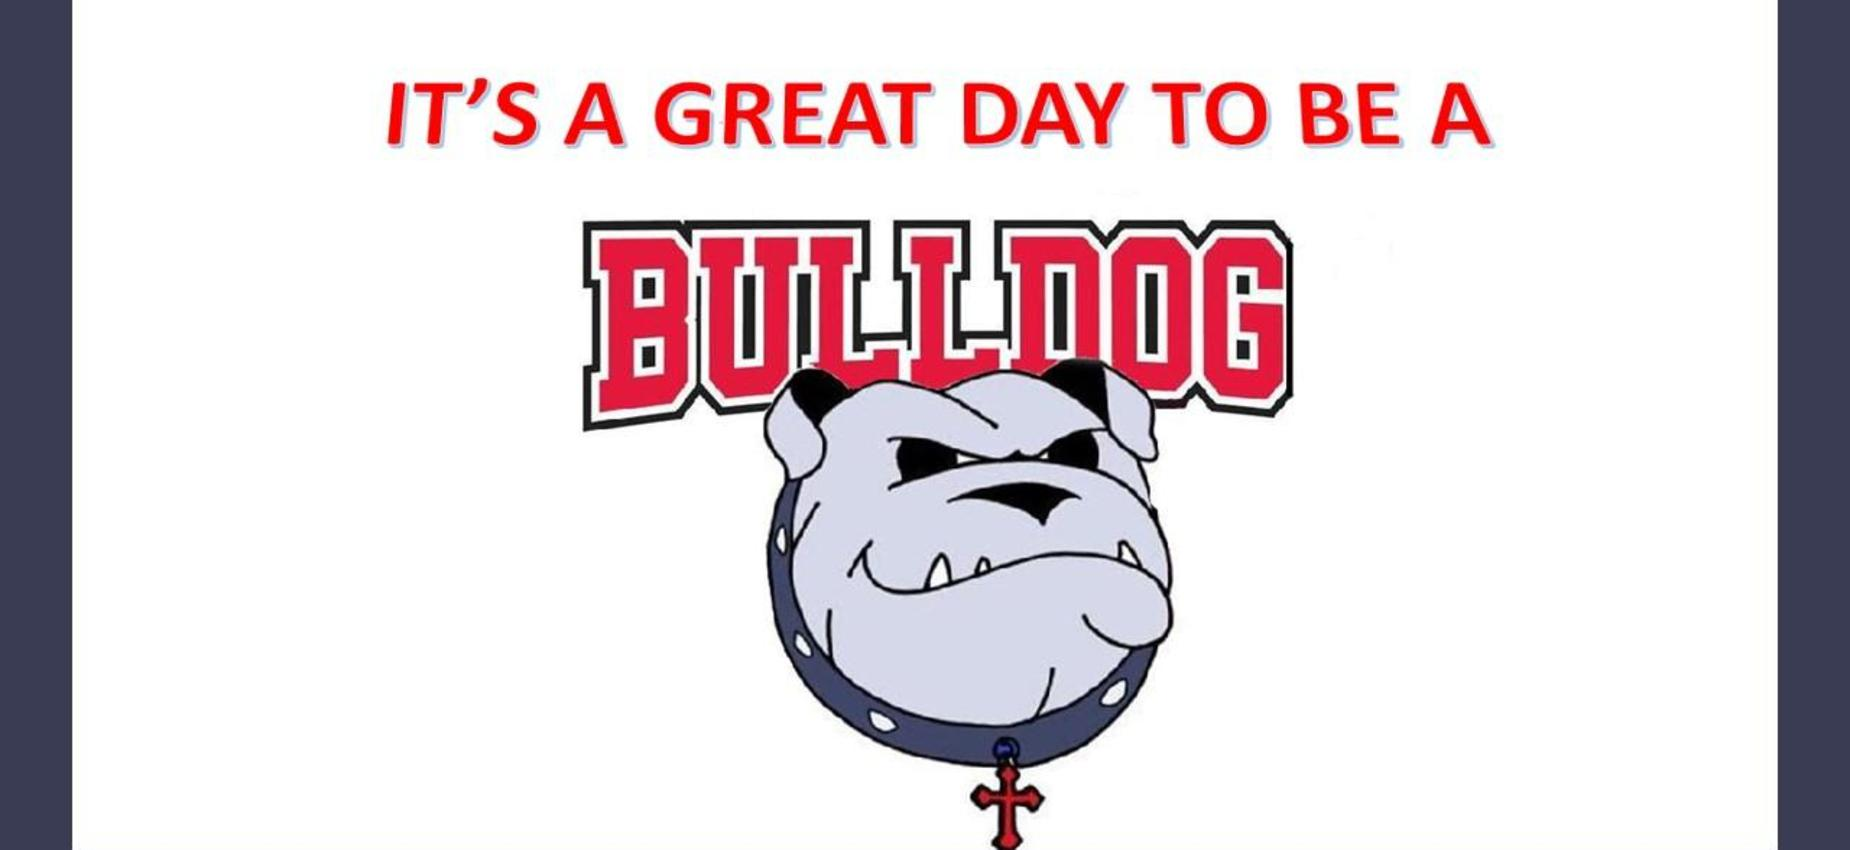 It's a Great Day to be a Bulldog